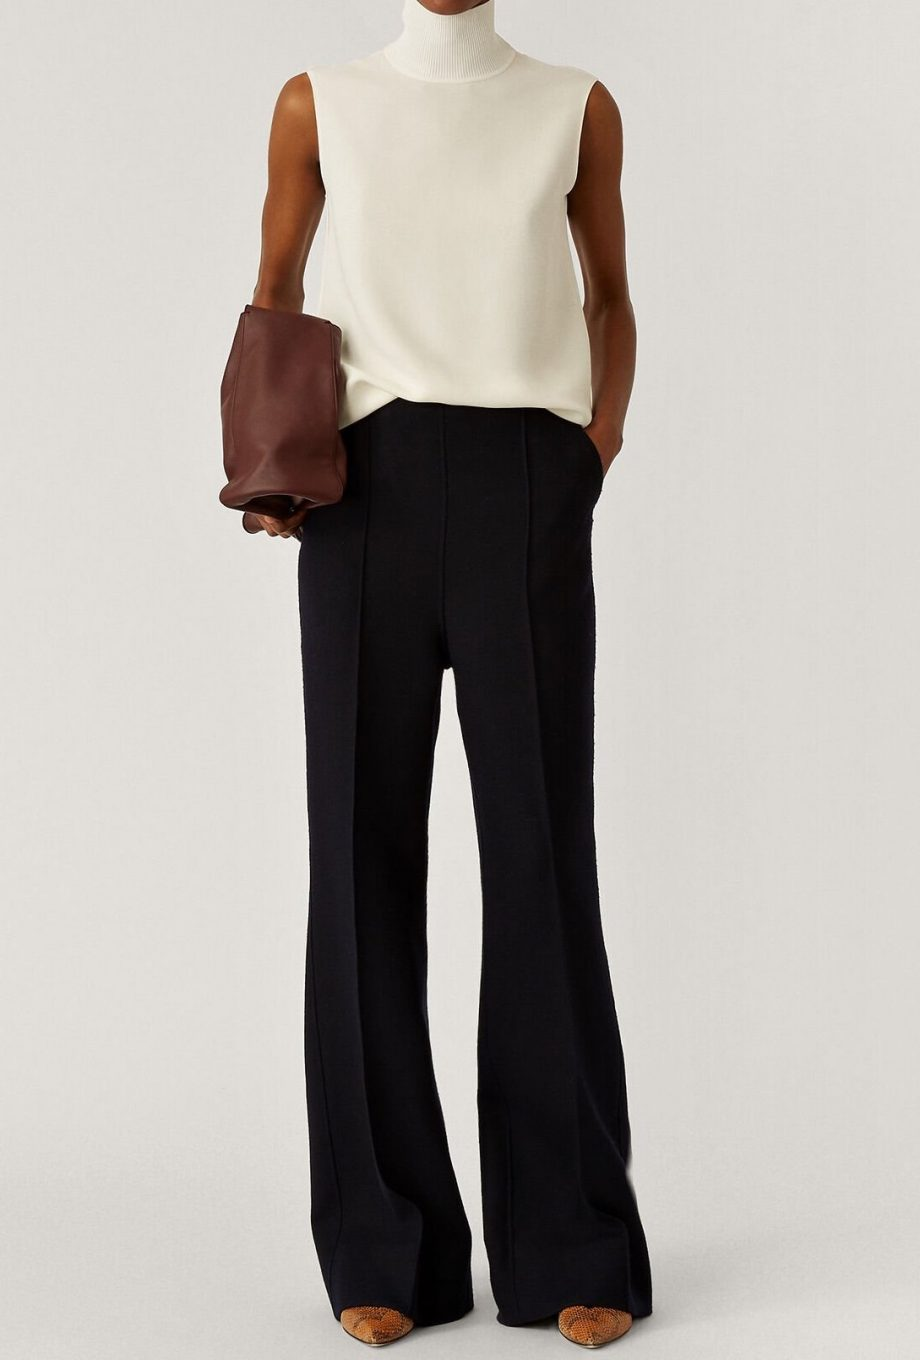 jf0048700370-Talou-Stretch-Double-Face-Trousers-2